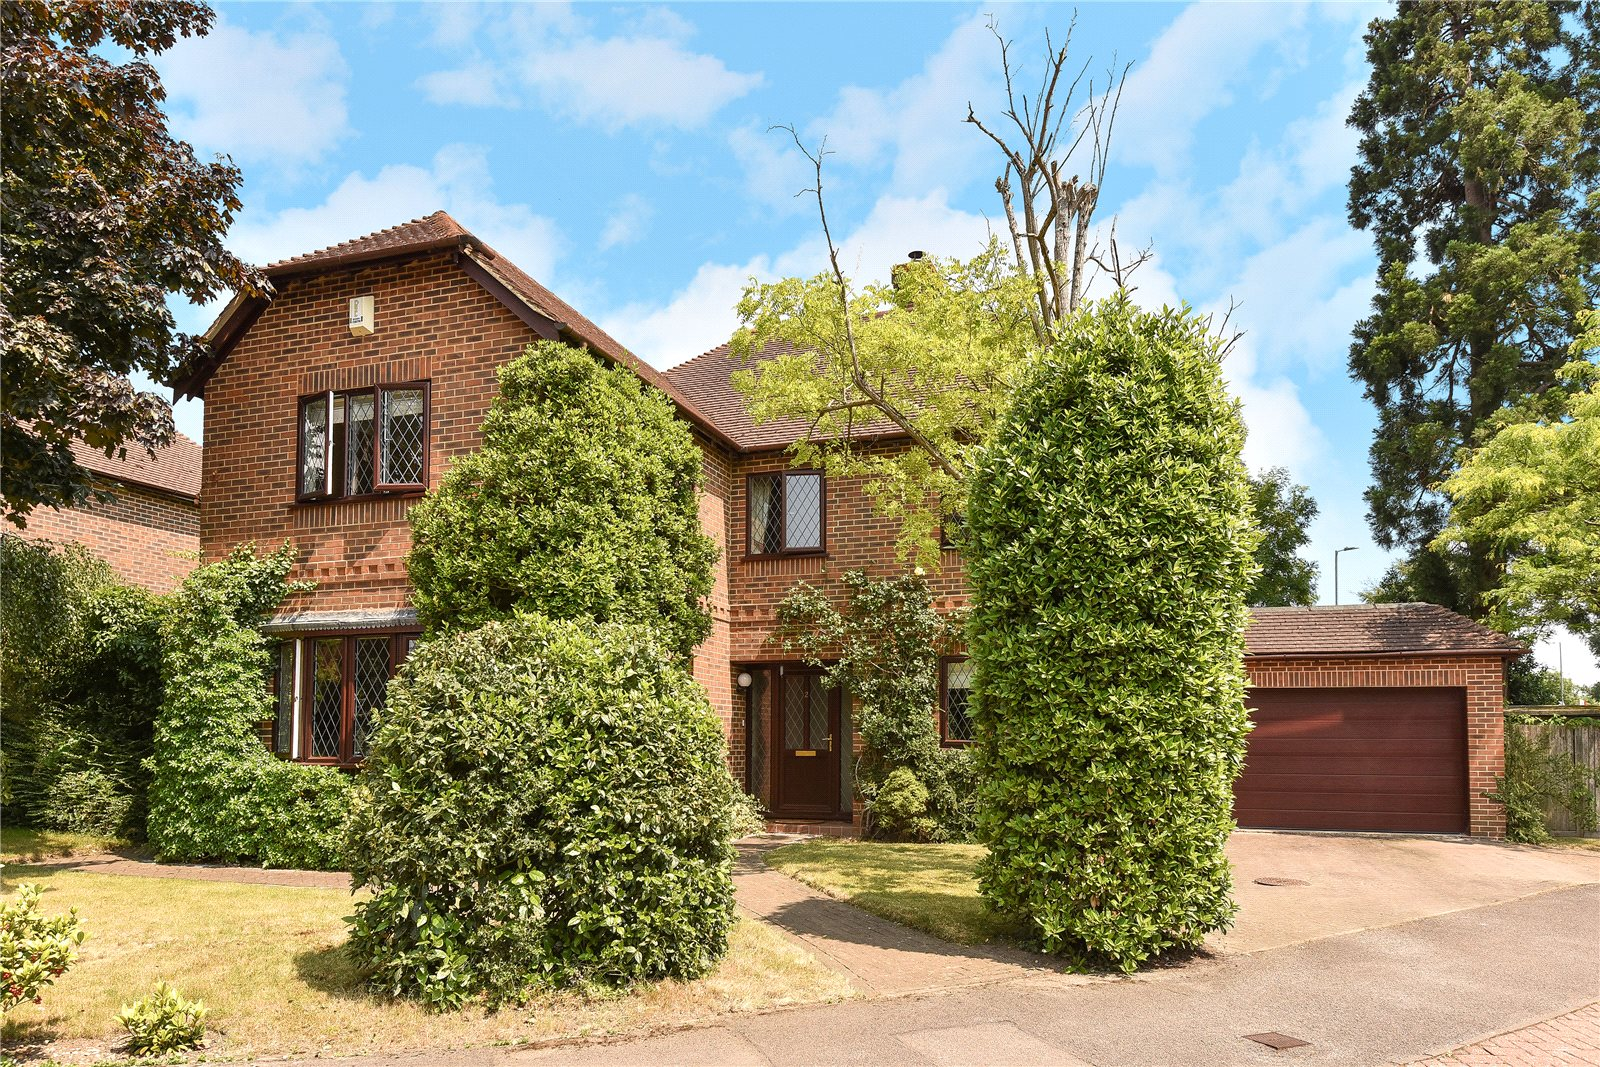 4 Bedrooms Detached House for sale in Lych Gate Close, Sandhurst, Berkshire, GU47